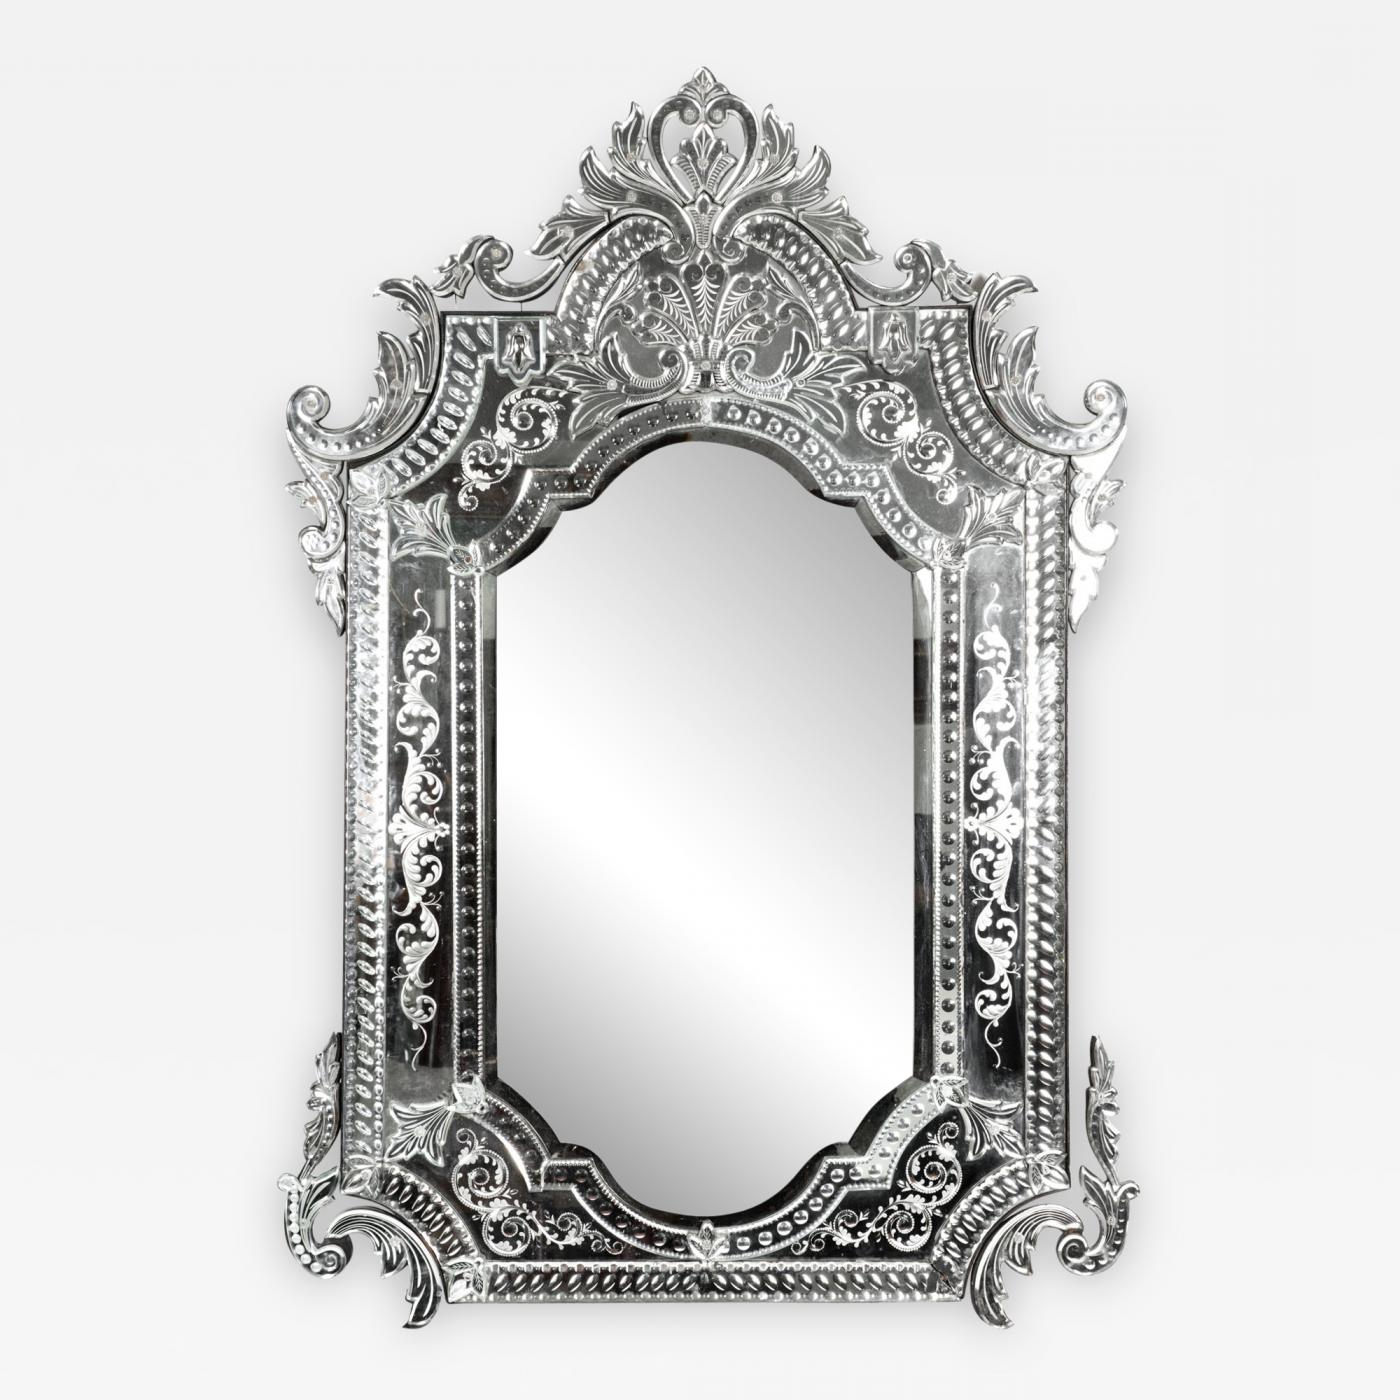 2019 Etched Wall Mirrors In Large Etched Glass Framed Venetian Hanging Wall Mirror (View 10 of 20)